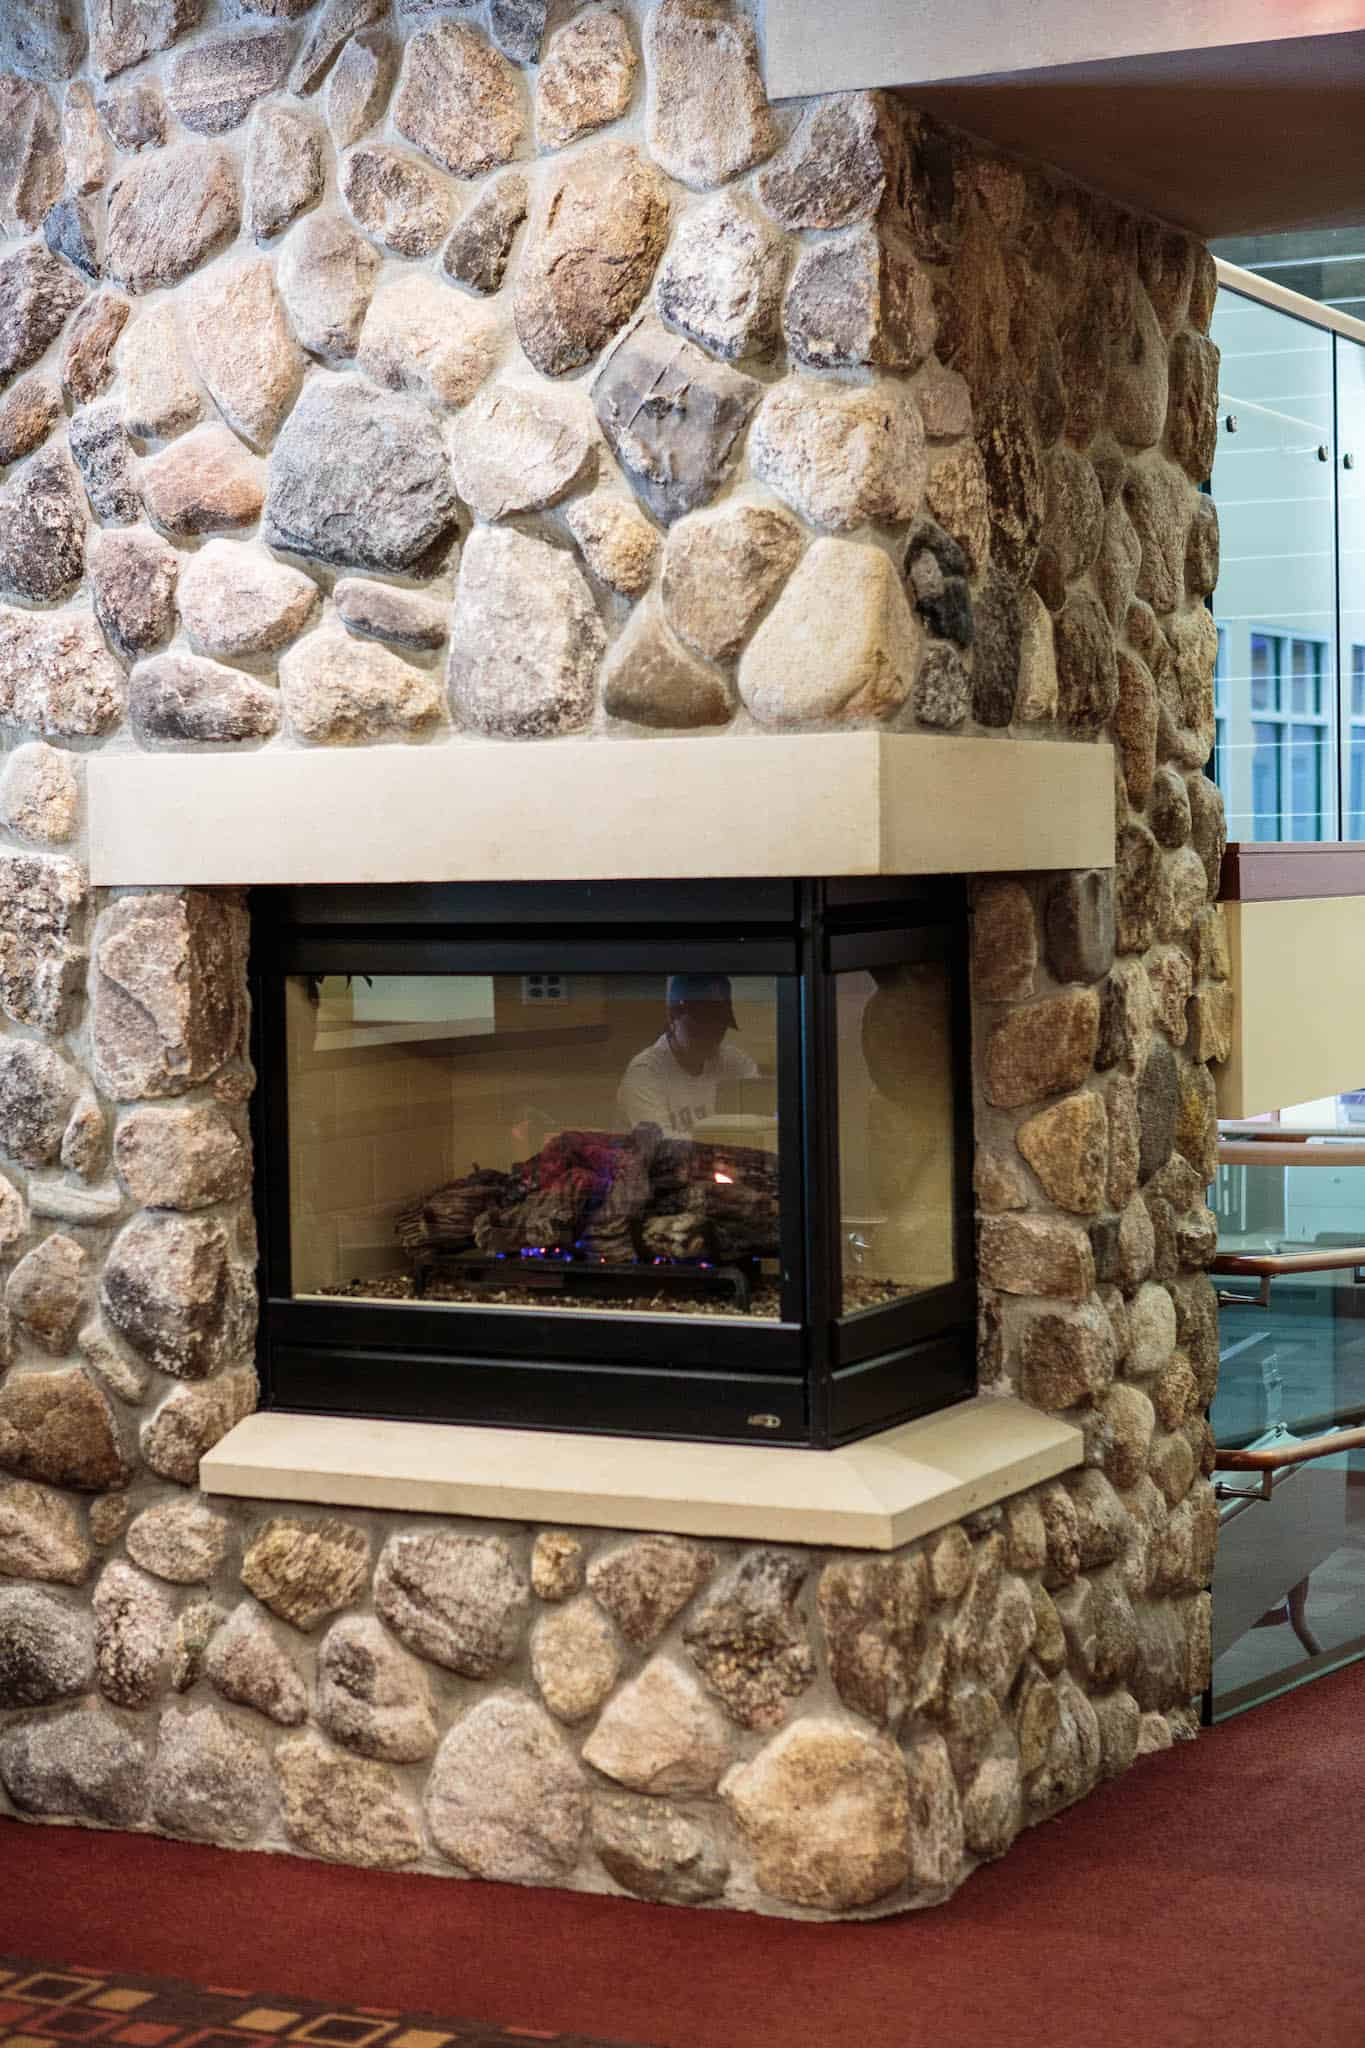 Stupendous Choosing The Perfect Stone For Your Fireplace Stoneyard Home Interior And Landscaping Ferensignezvosmurscom